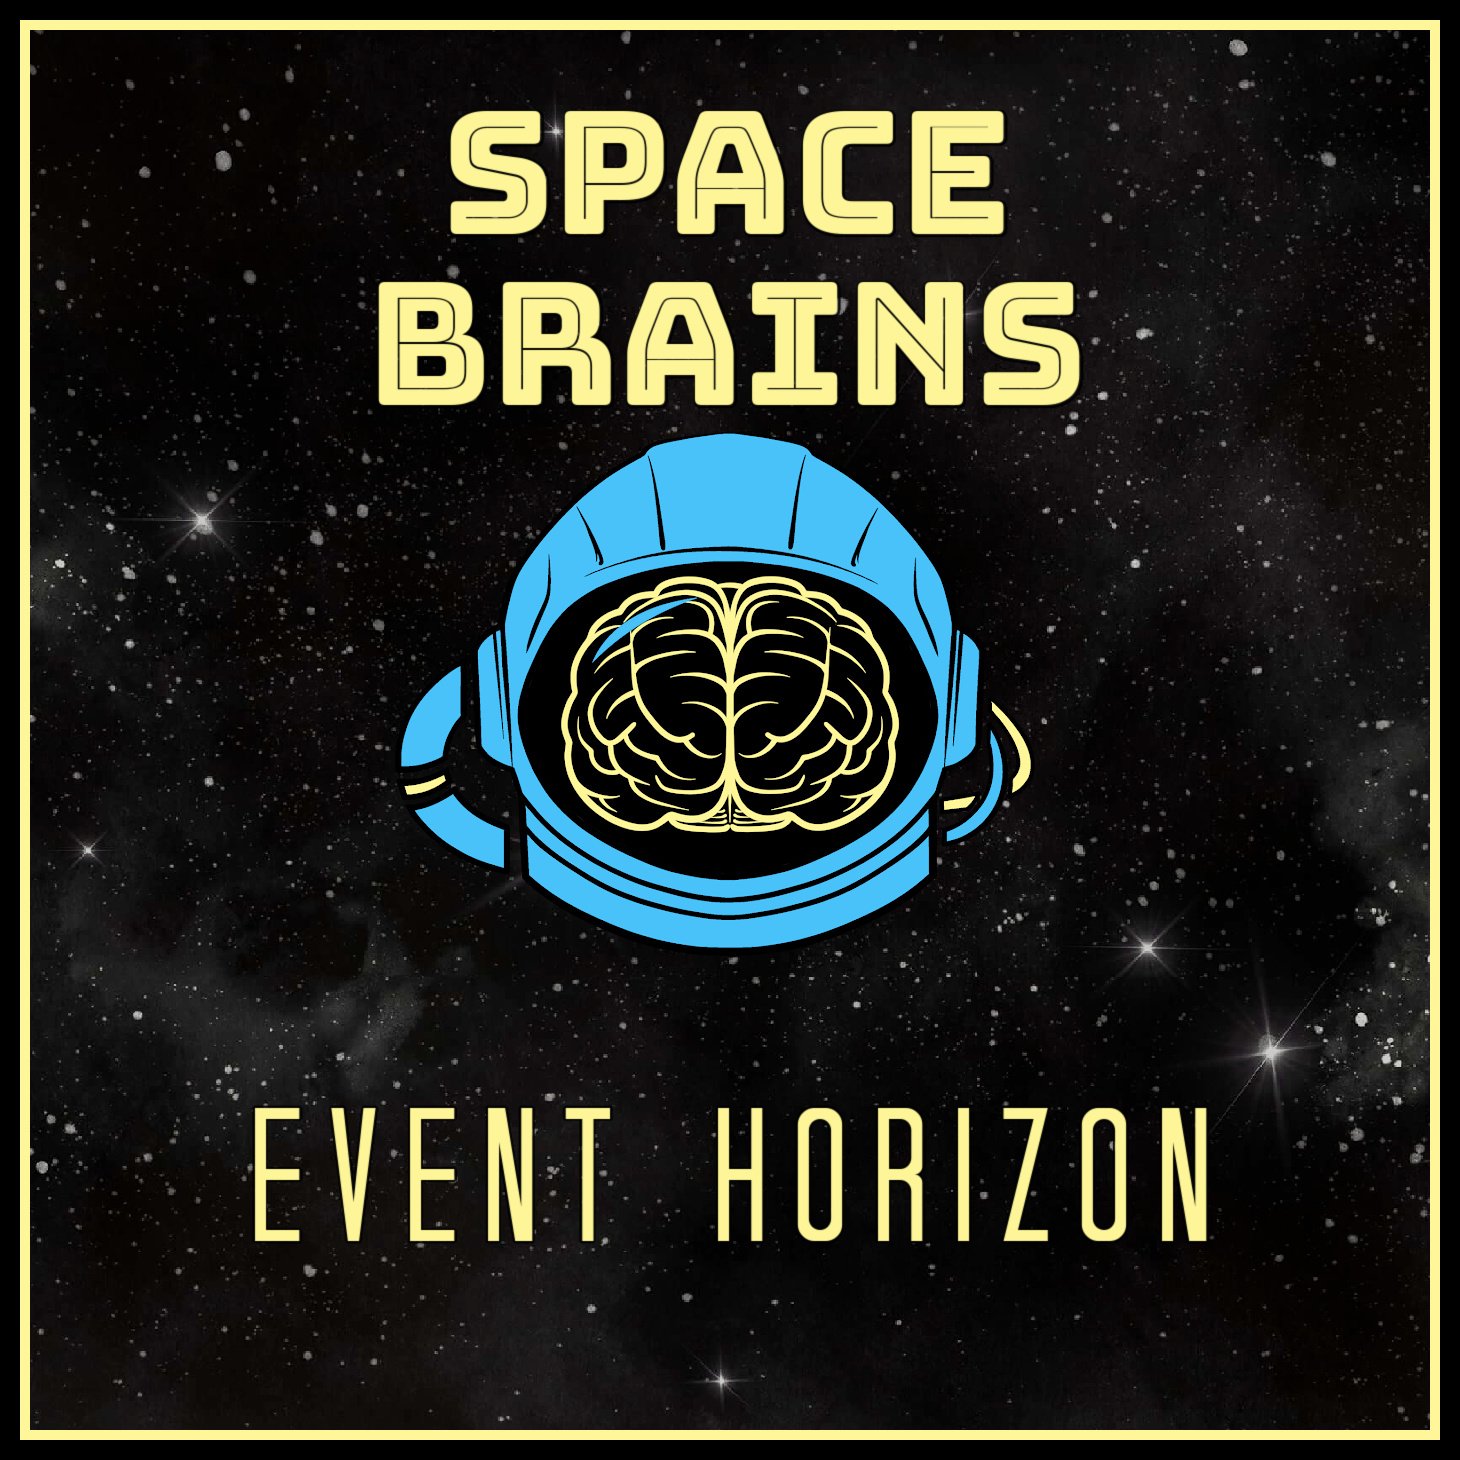 Space Brains - 25 - Event Horizon